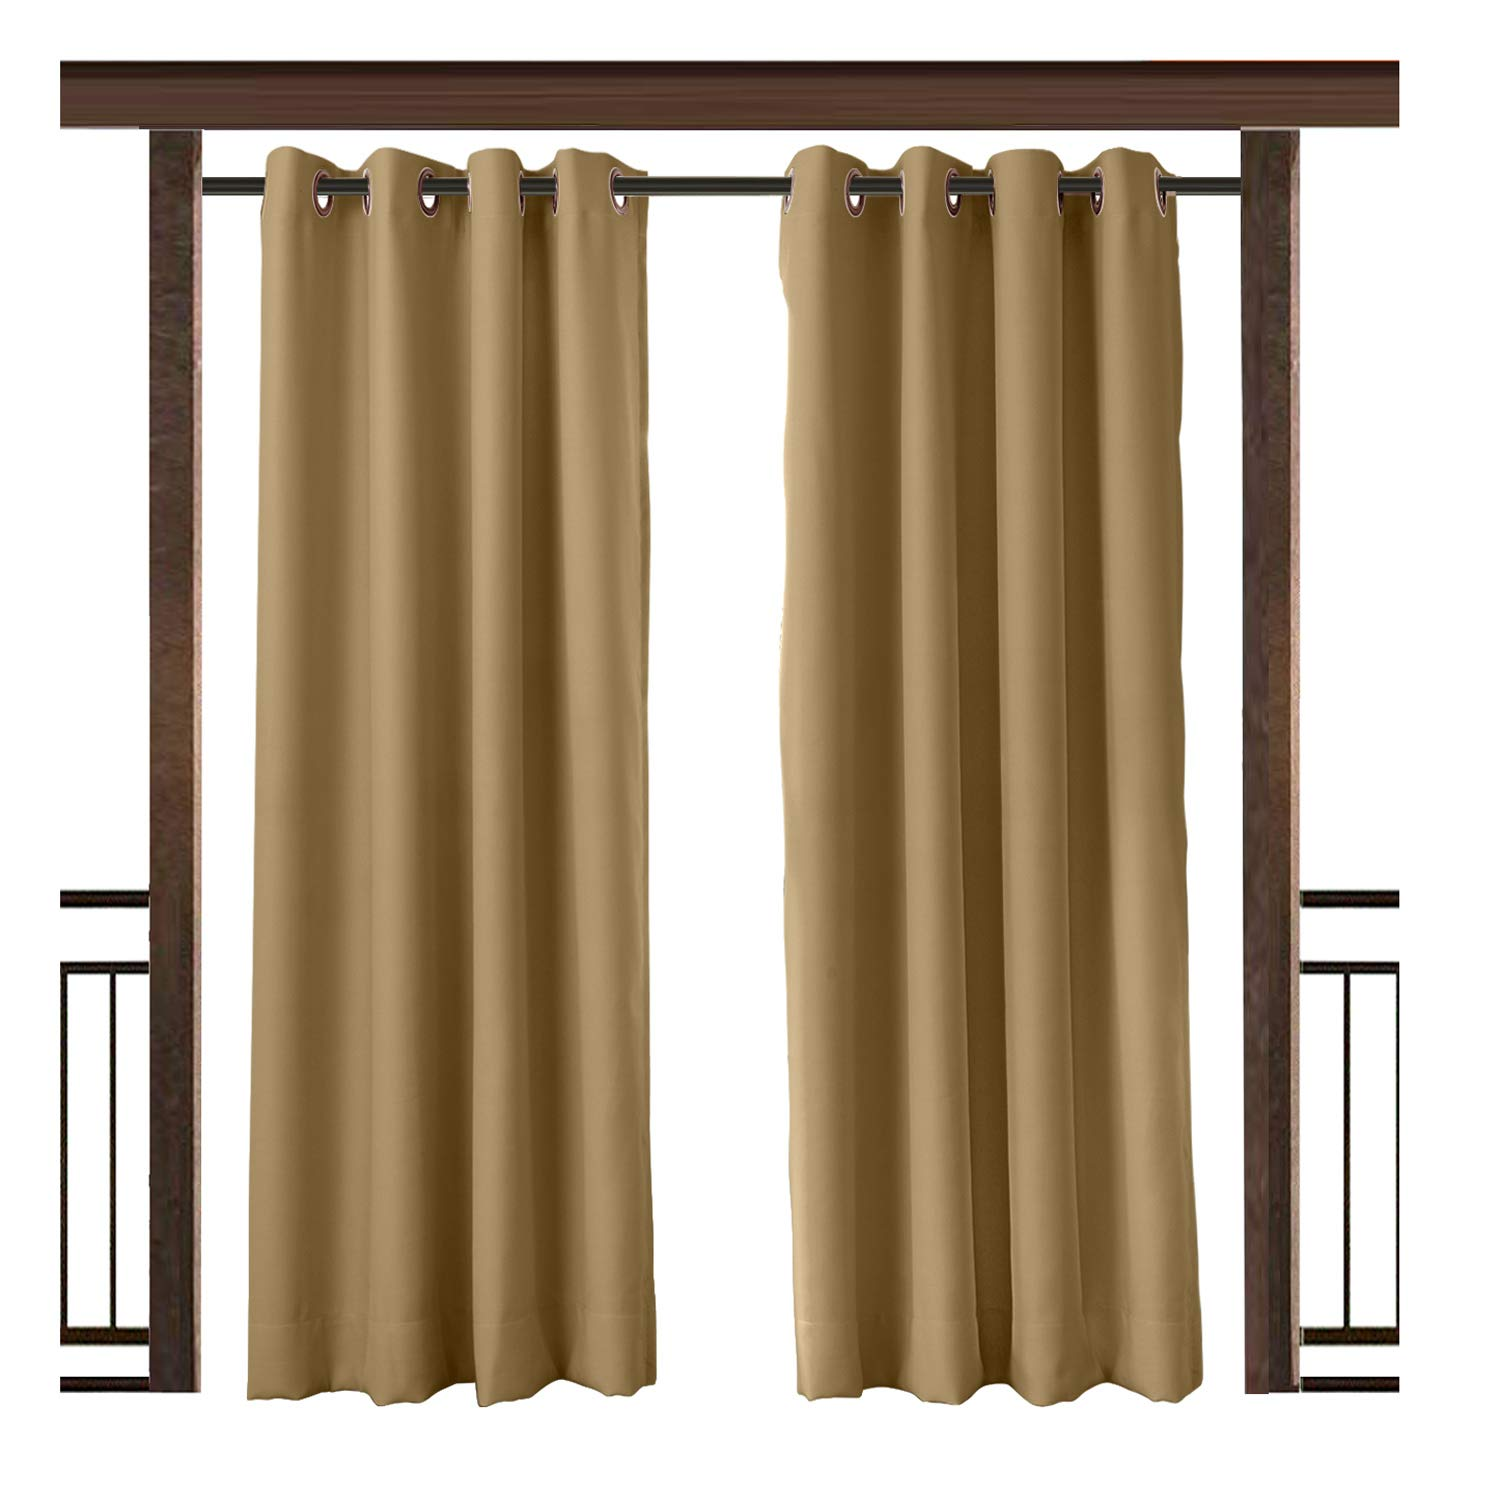 TWOPAGES Outdoor Waterproof Curtain Wheat Rustproof Grommet Drape, 150'' W x 96'' L for Front Porch Pergola Cabana Covered Patio Gazebo Dock Beach Home (1 Panel)